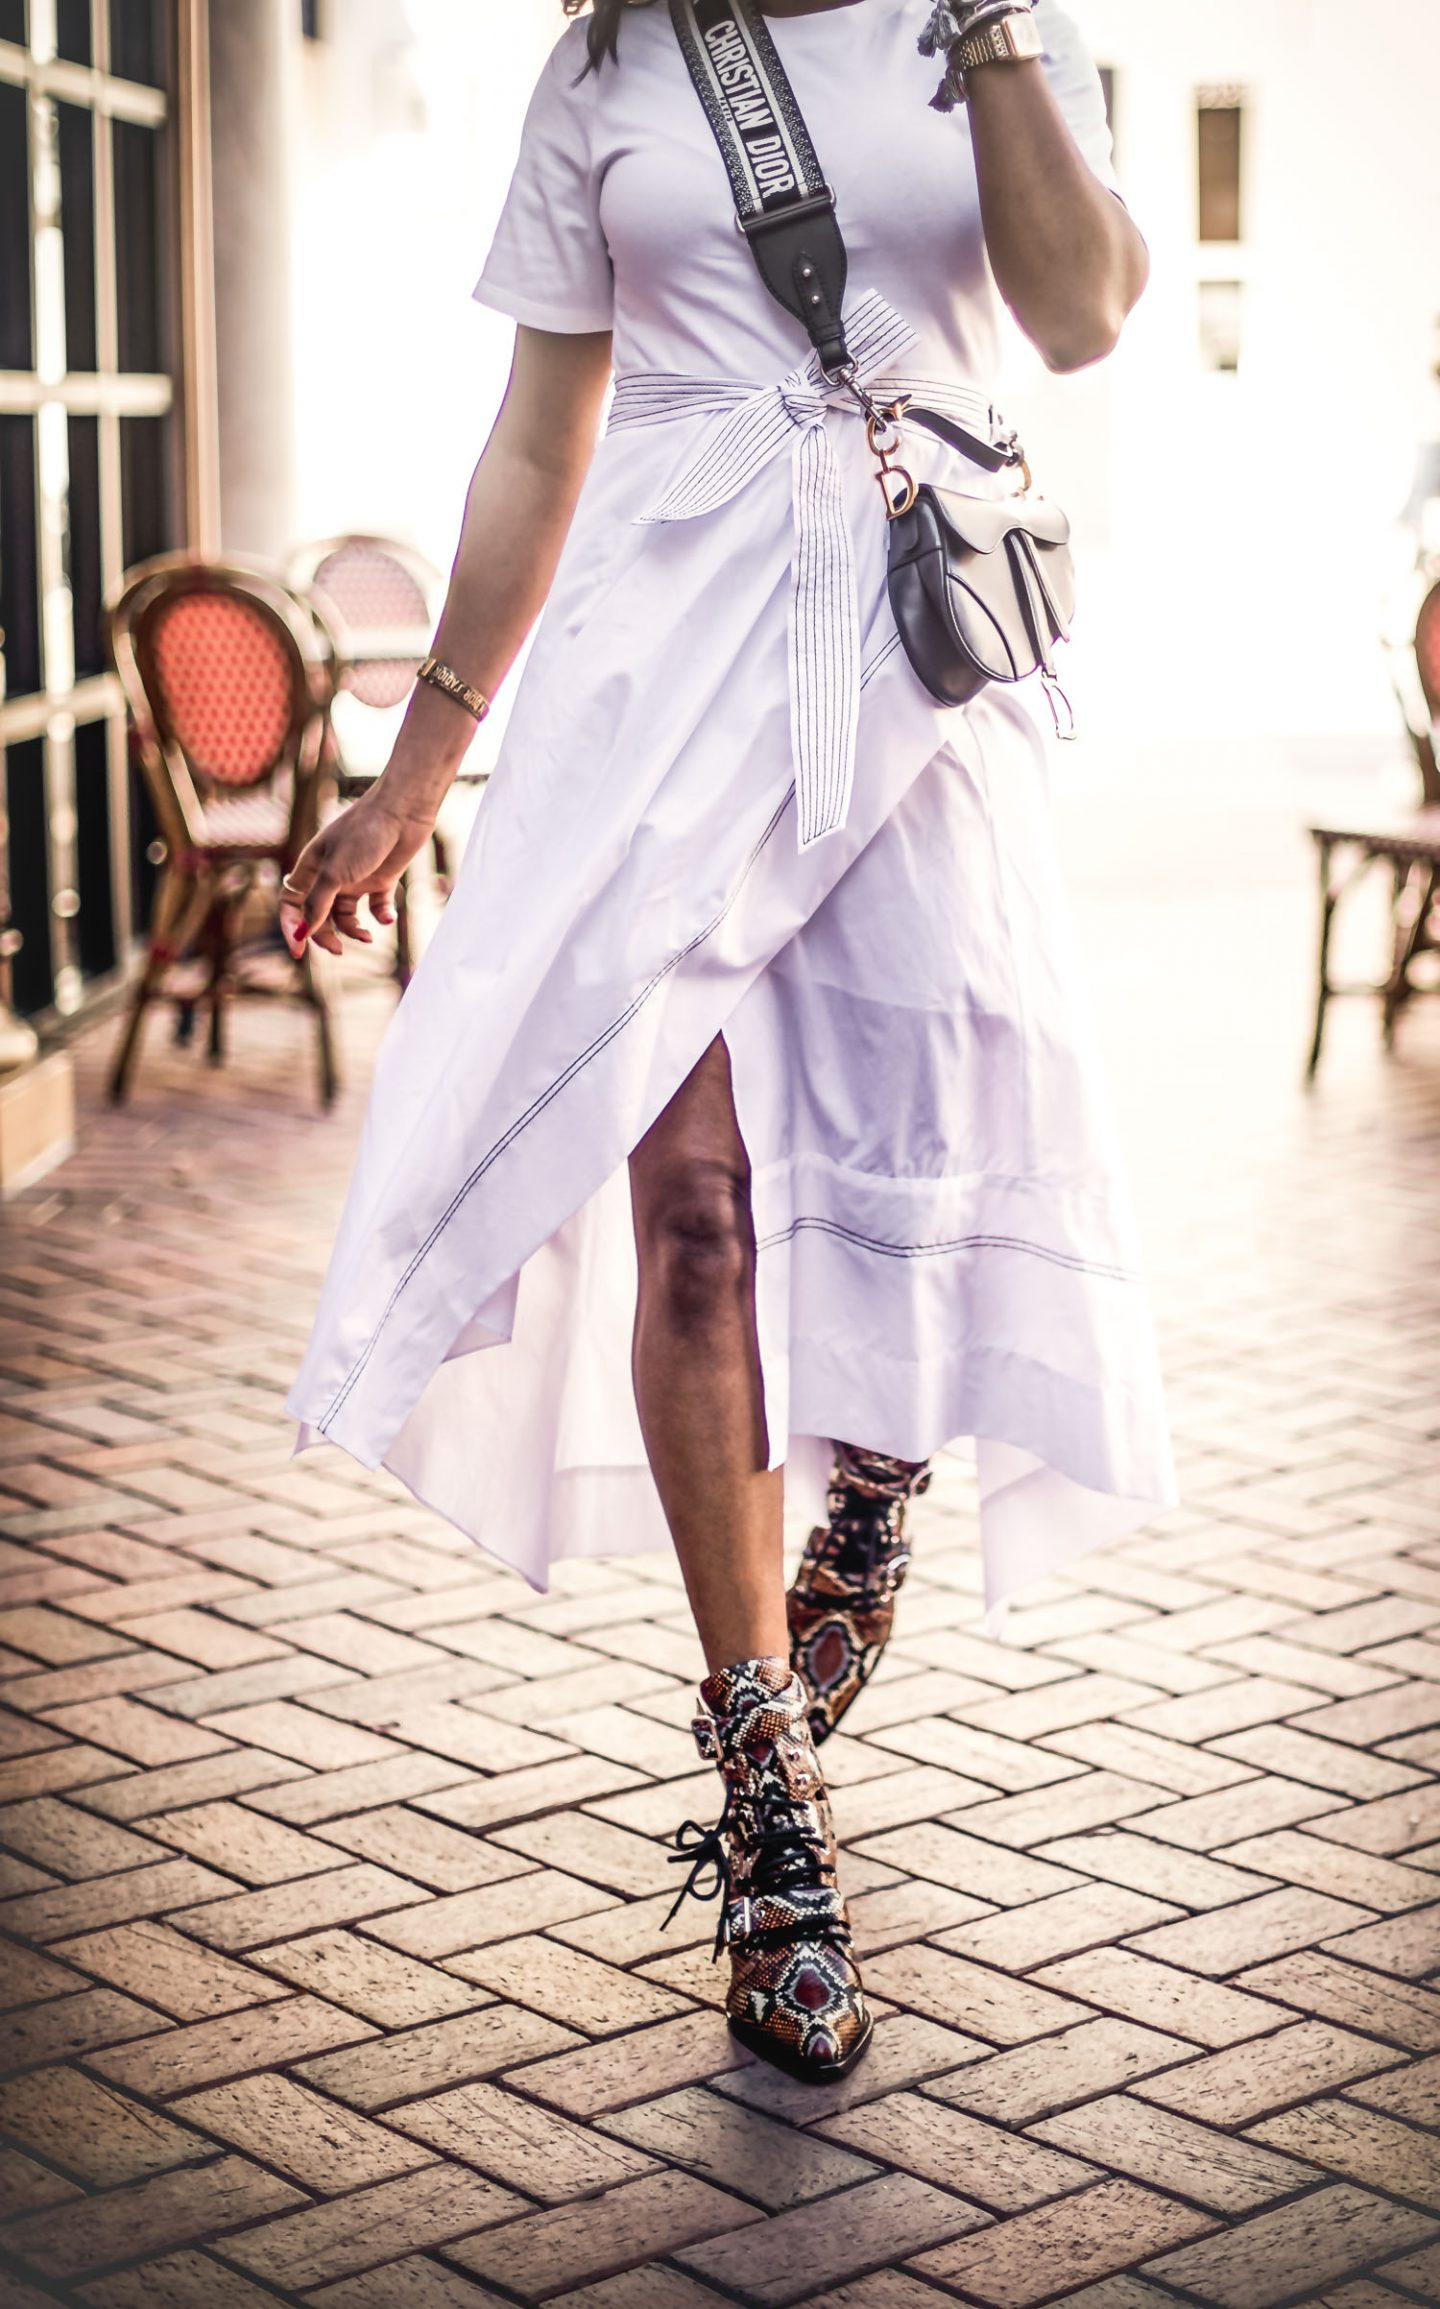 Atlanta lifestyle blogger Monica Awe-Etuk wearing a white 3.1 philip lim midi dress, chloe sunglasses, chloe snakeskin boots, dior saddle bag. How to style snakeskin boots for spring